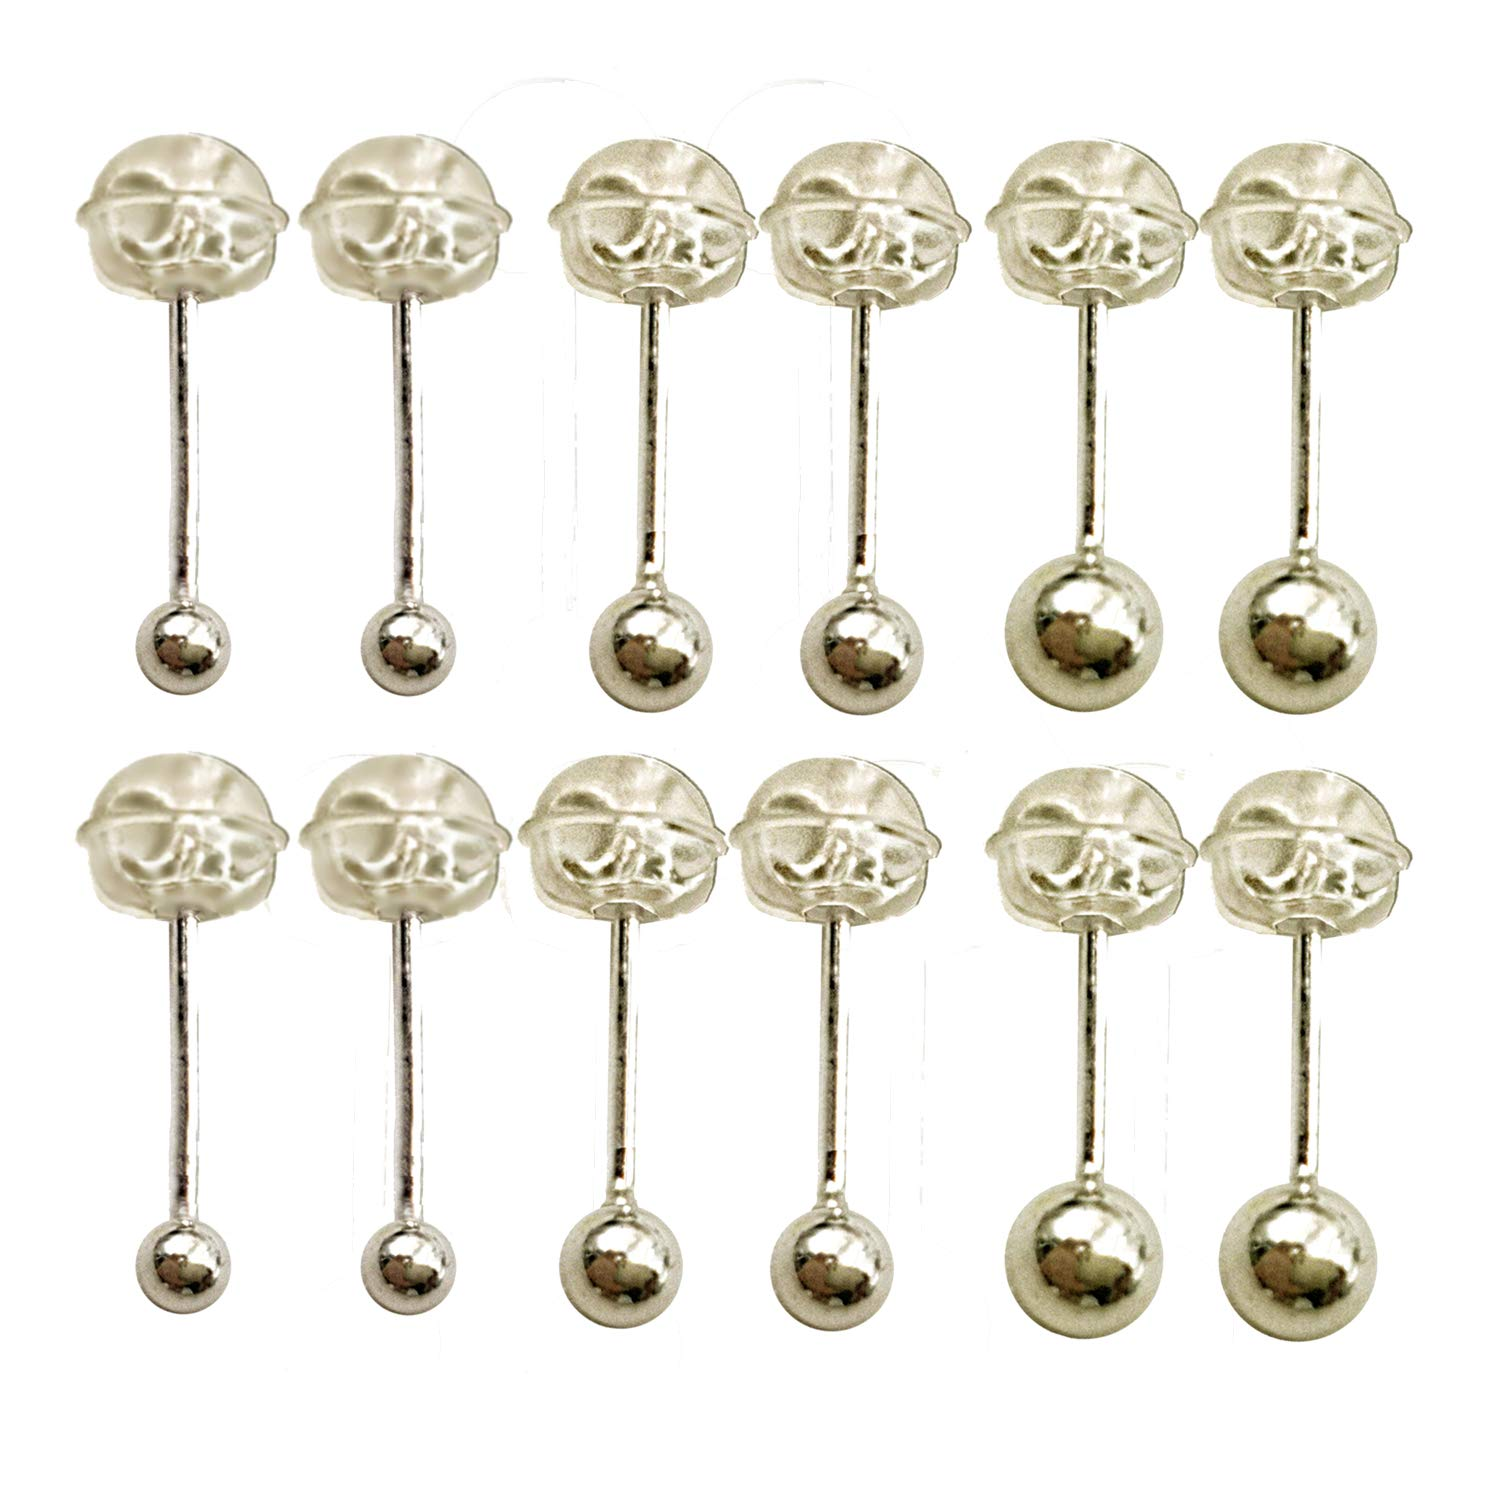 Sinya Unisex Sterling Silver 2-6mm Round Ball Stud piercings Earrings for Men Women SYSEB2.0-s925